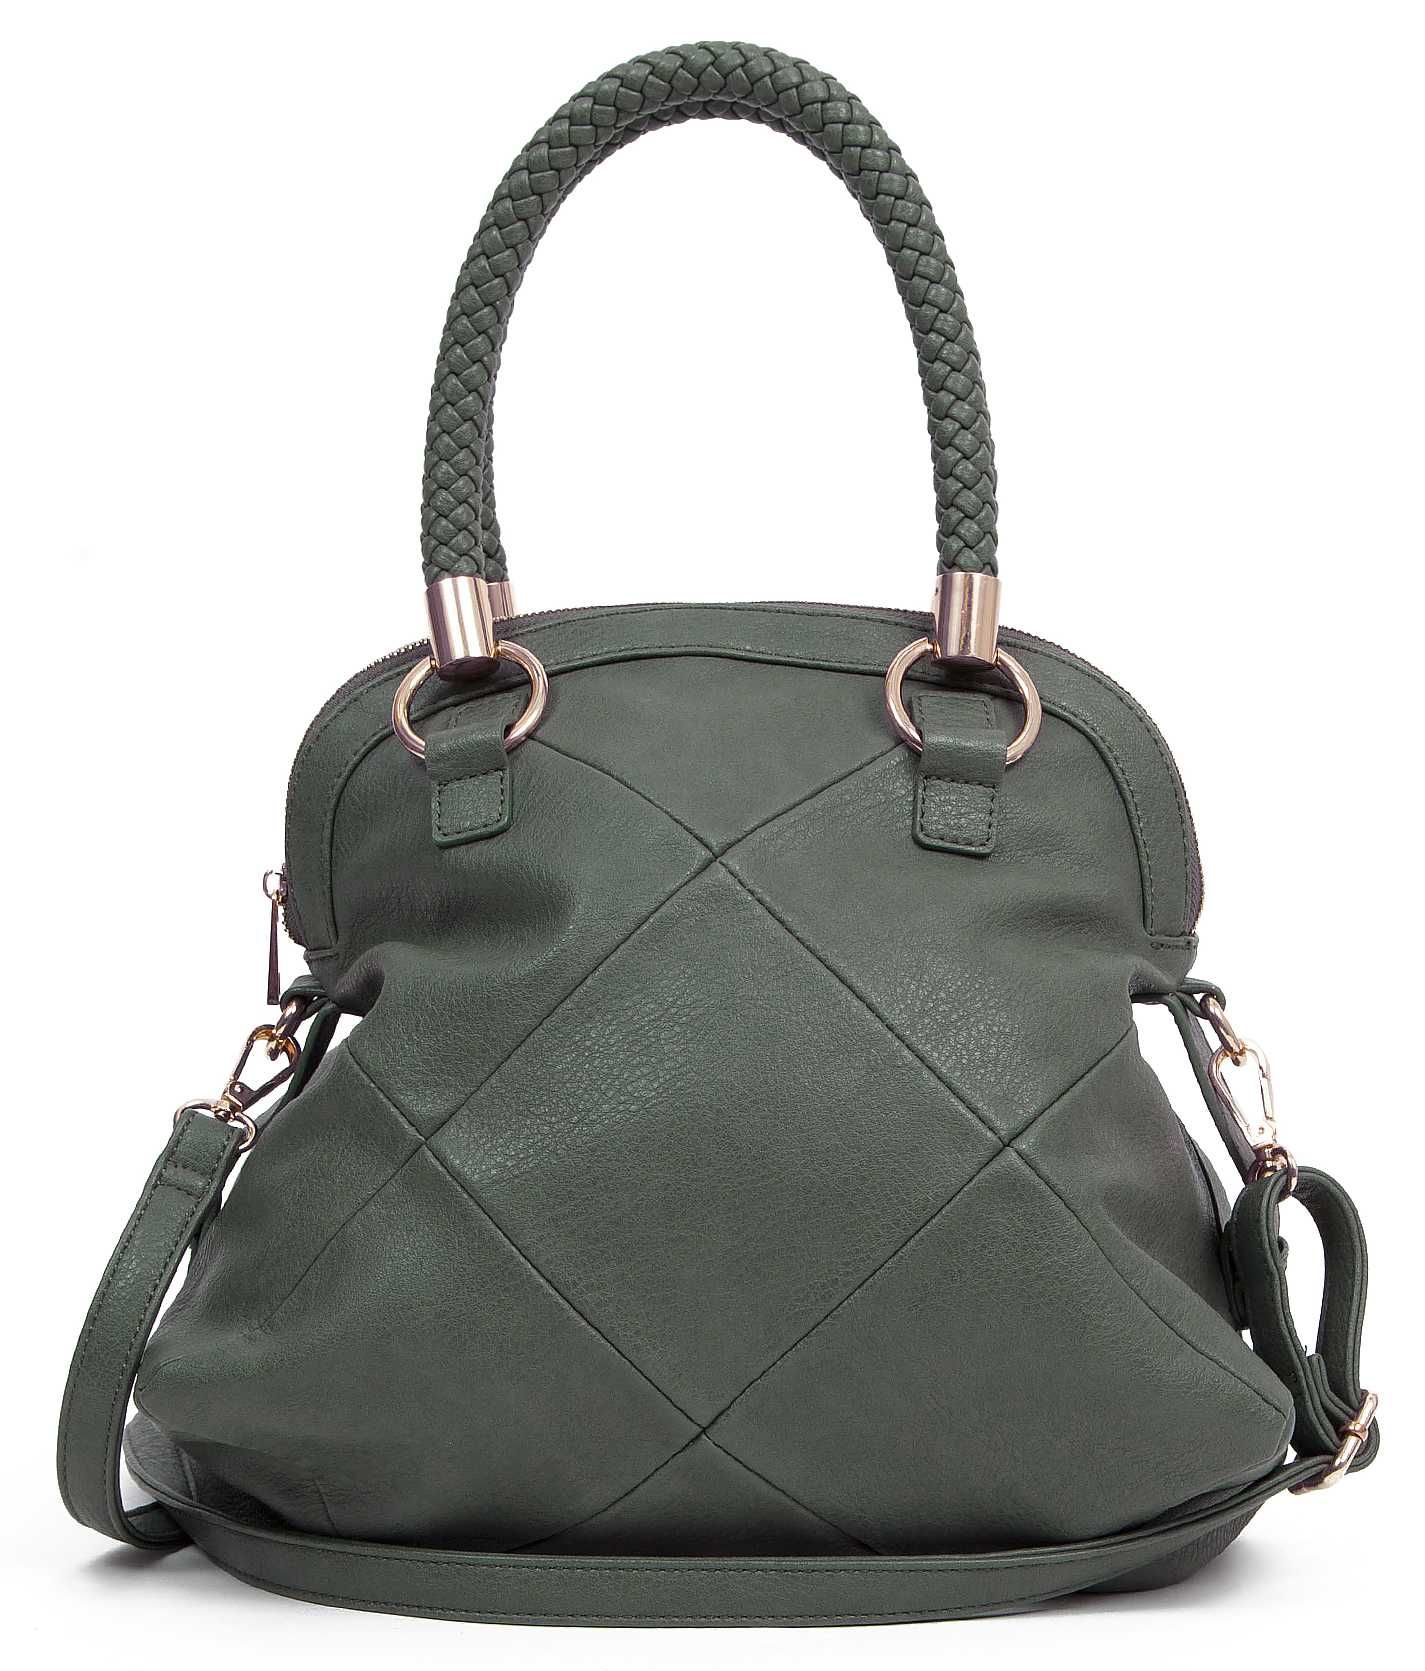 Urban Expressions Ouchan Purse - Women's Bags   Buckle